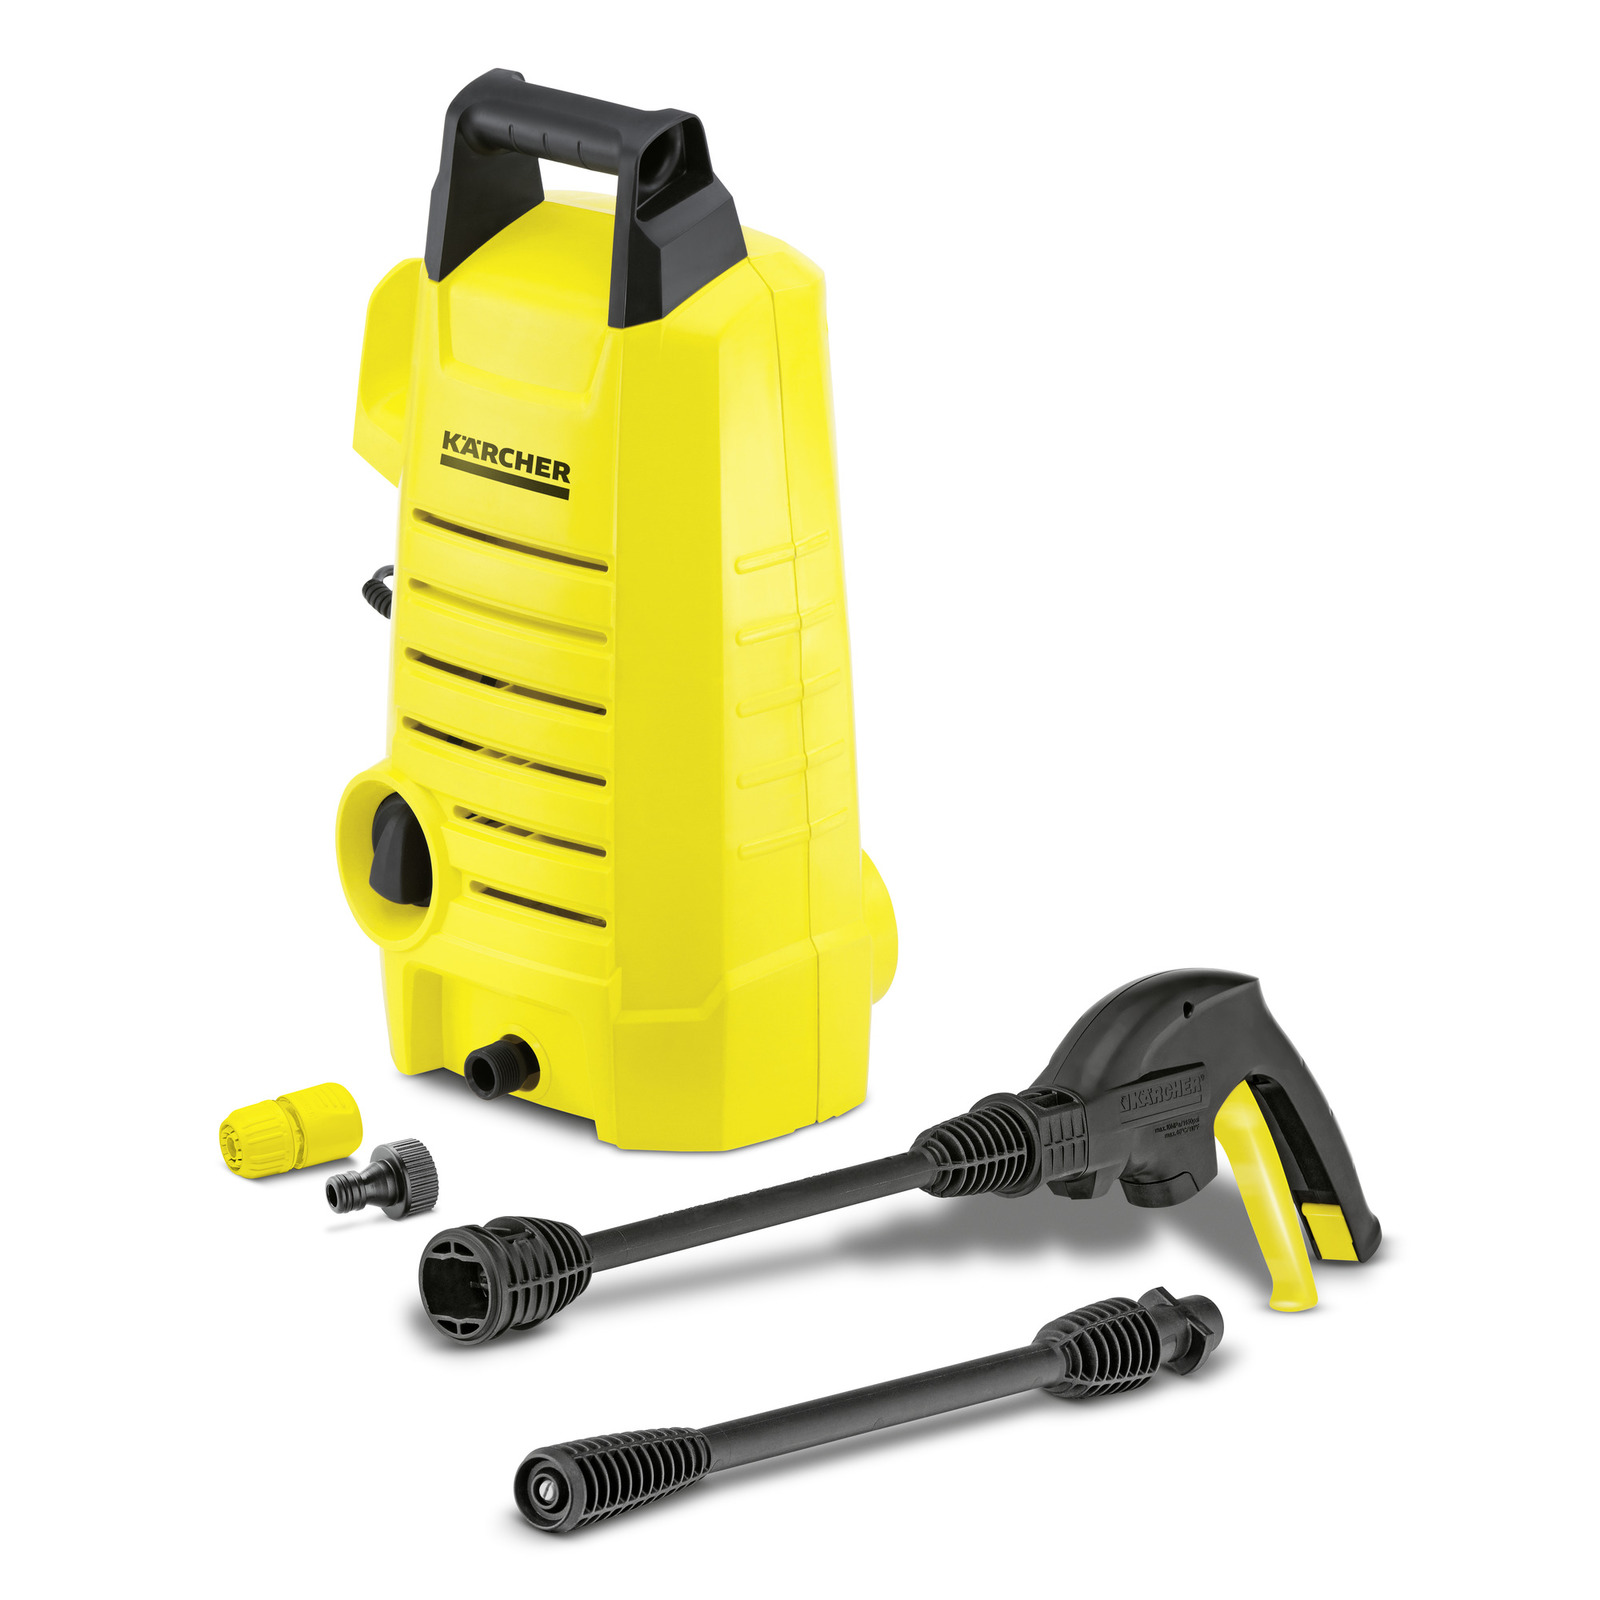 K 1 Pt Karcher Wiring Diagram Pressure Washer 16000050 Https Id Home Garden Washers 16000050html Compact Powerful And Economical The Entry Level High